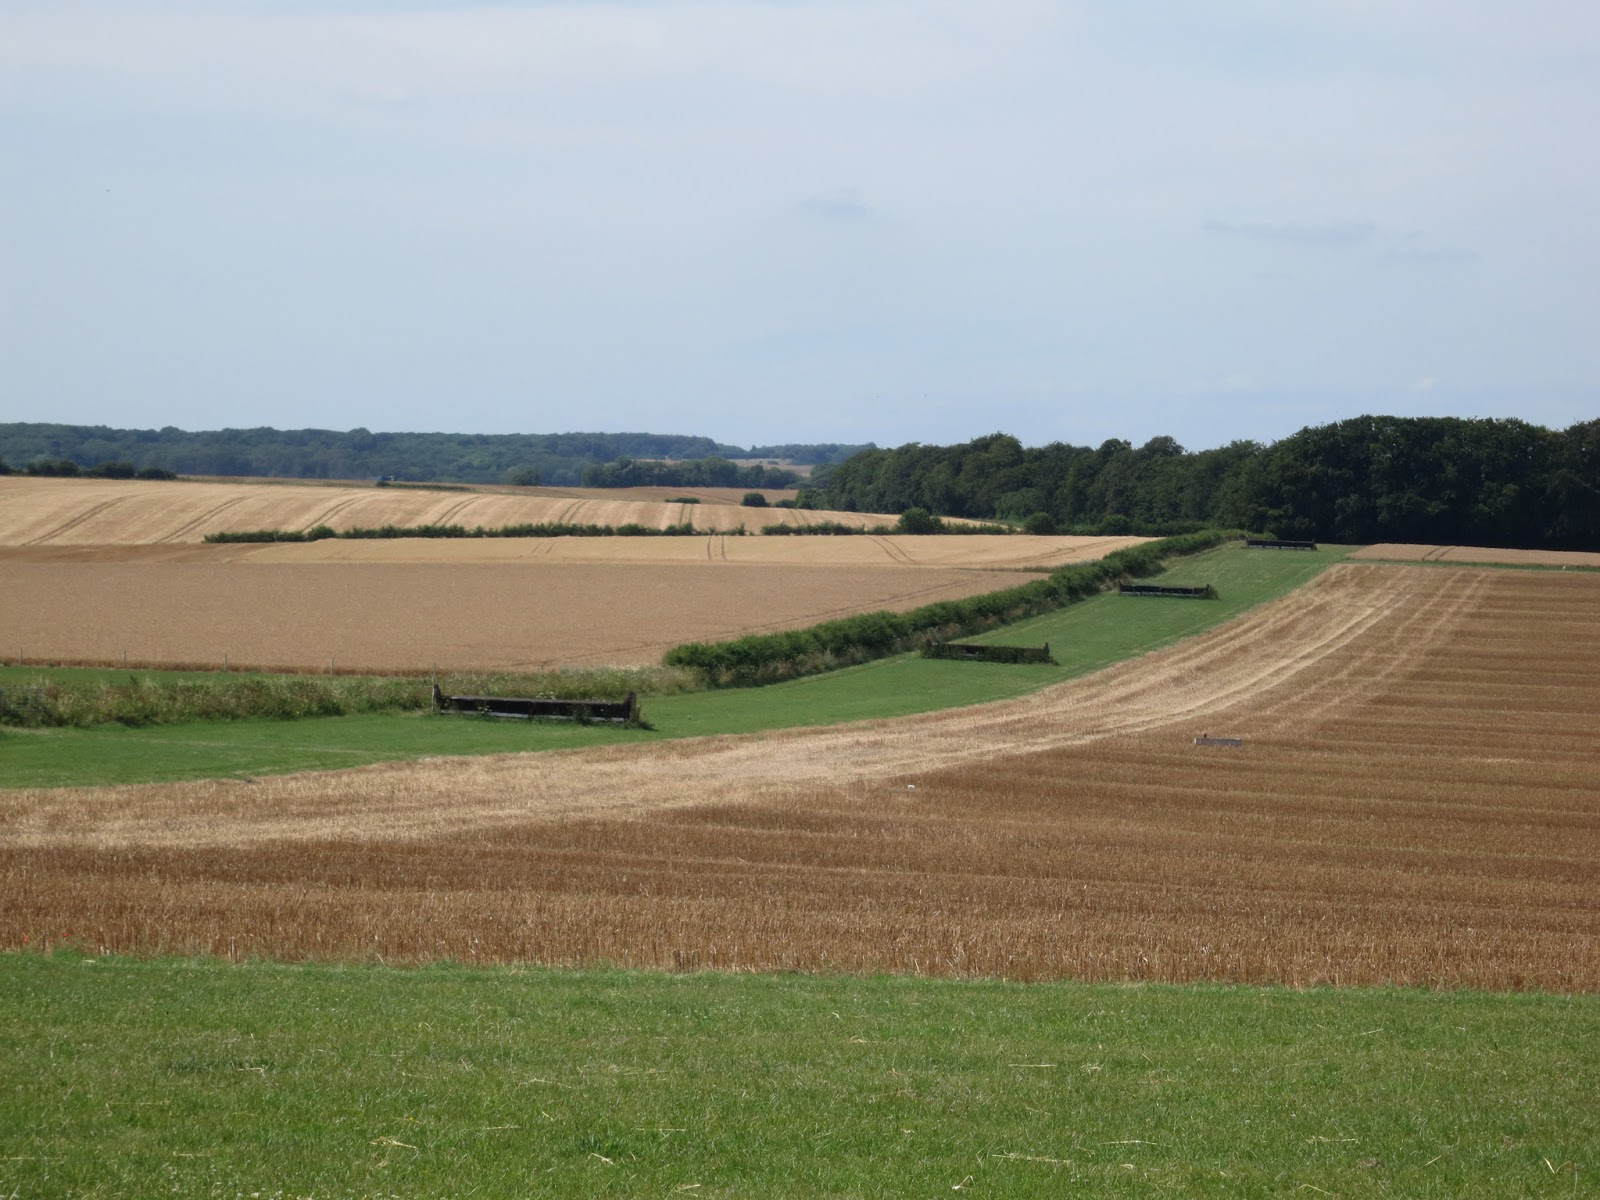 Mown fields of different colours (stubble) hedges, horse jumps and grass